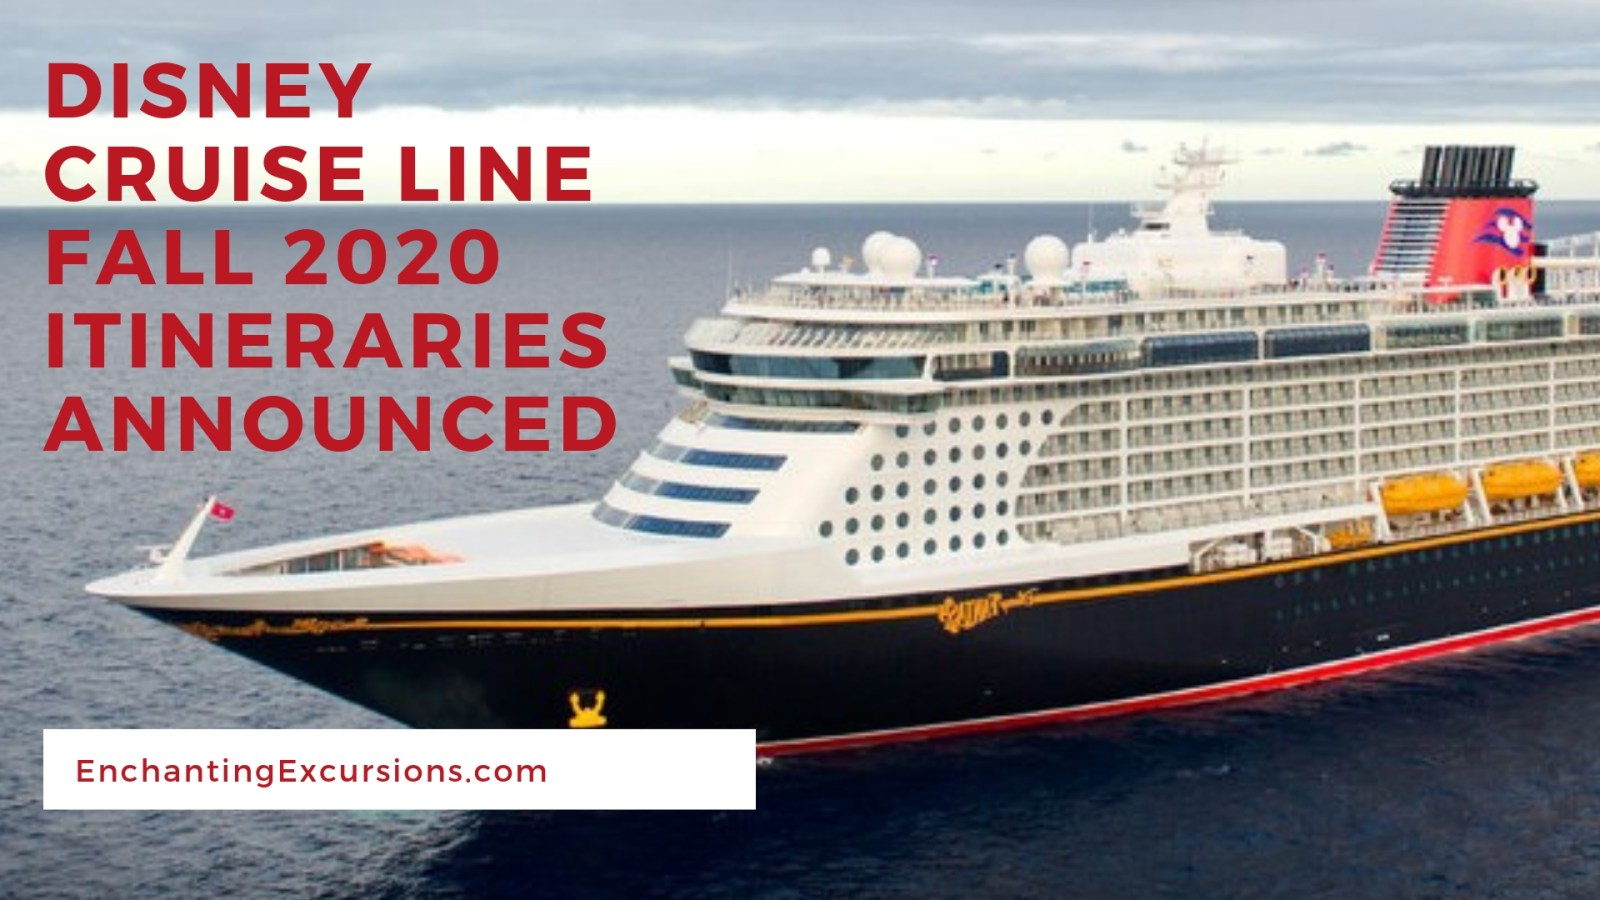 Disney Cruise Line 2020.Disney Cruise Line Announces Fall 2020 Itineraries